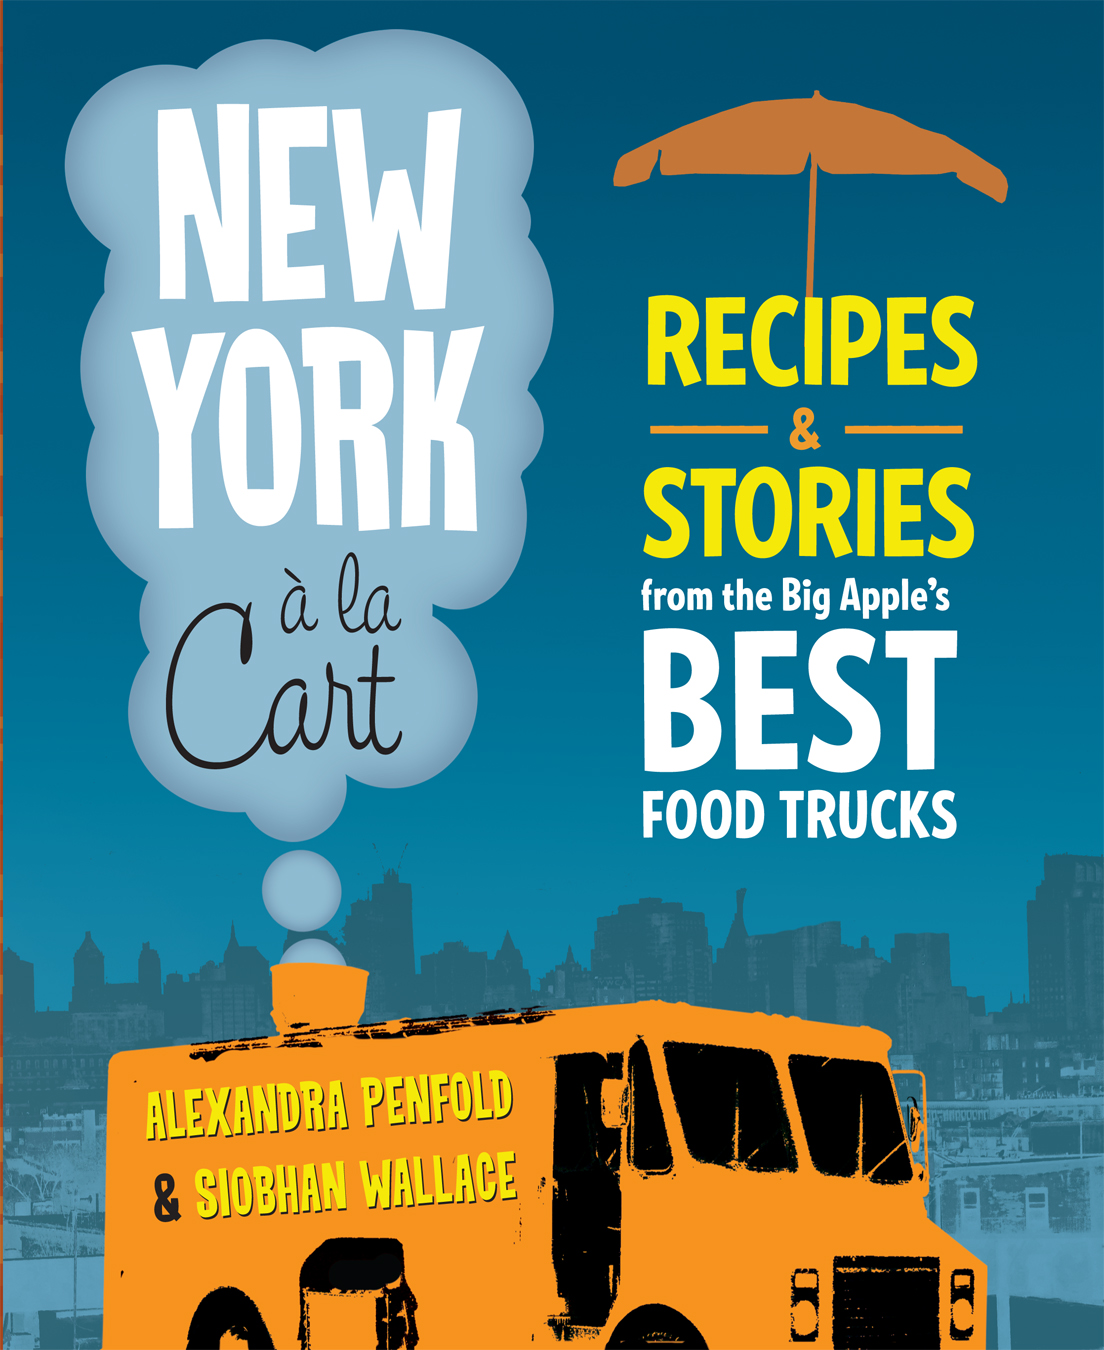 Book Launch: New York a la Cart by Alexandra Penfold & Siobhan Wallace